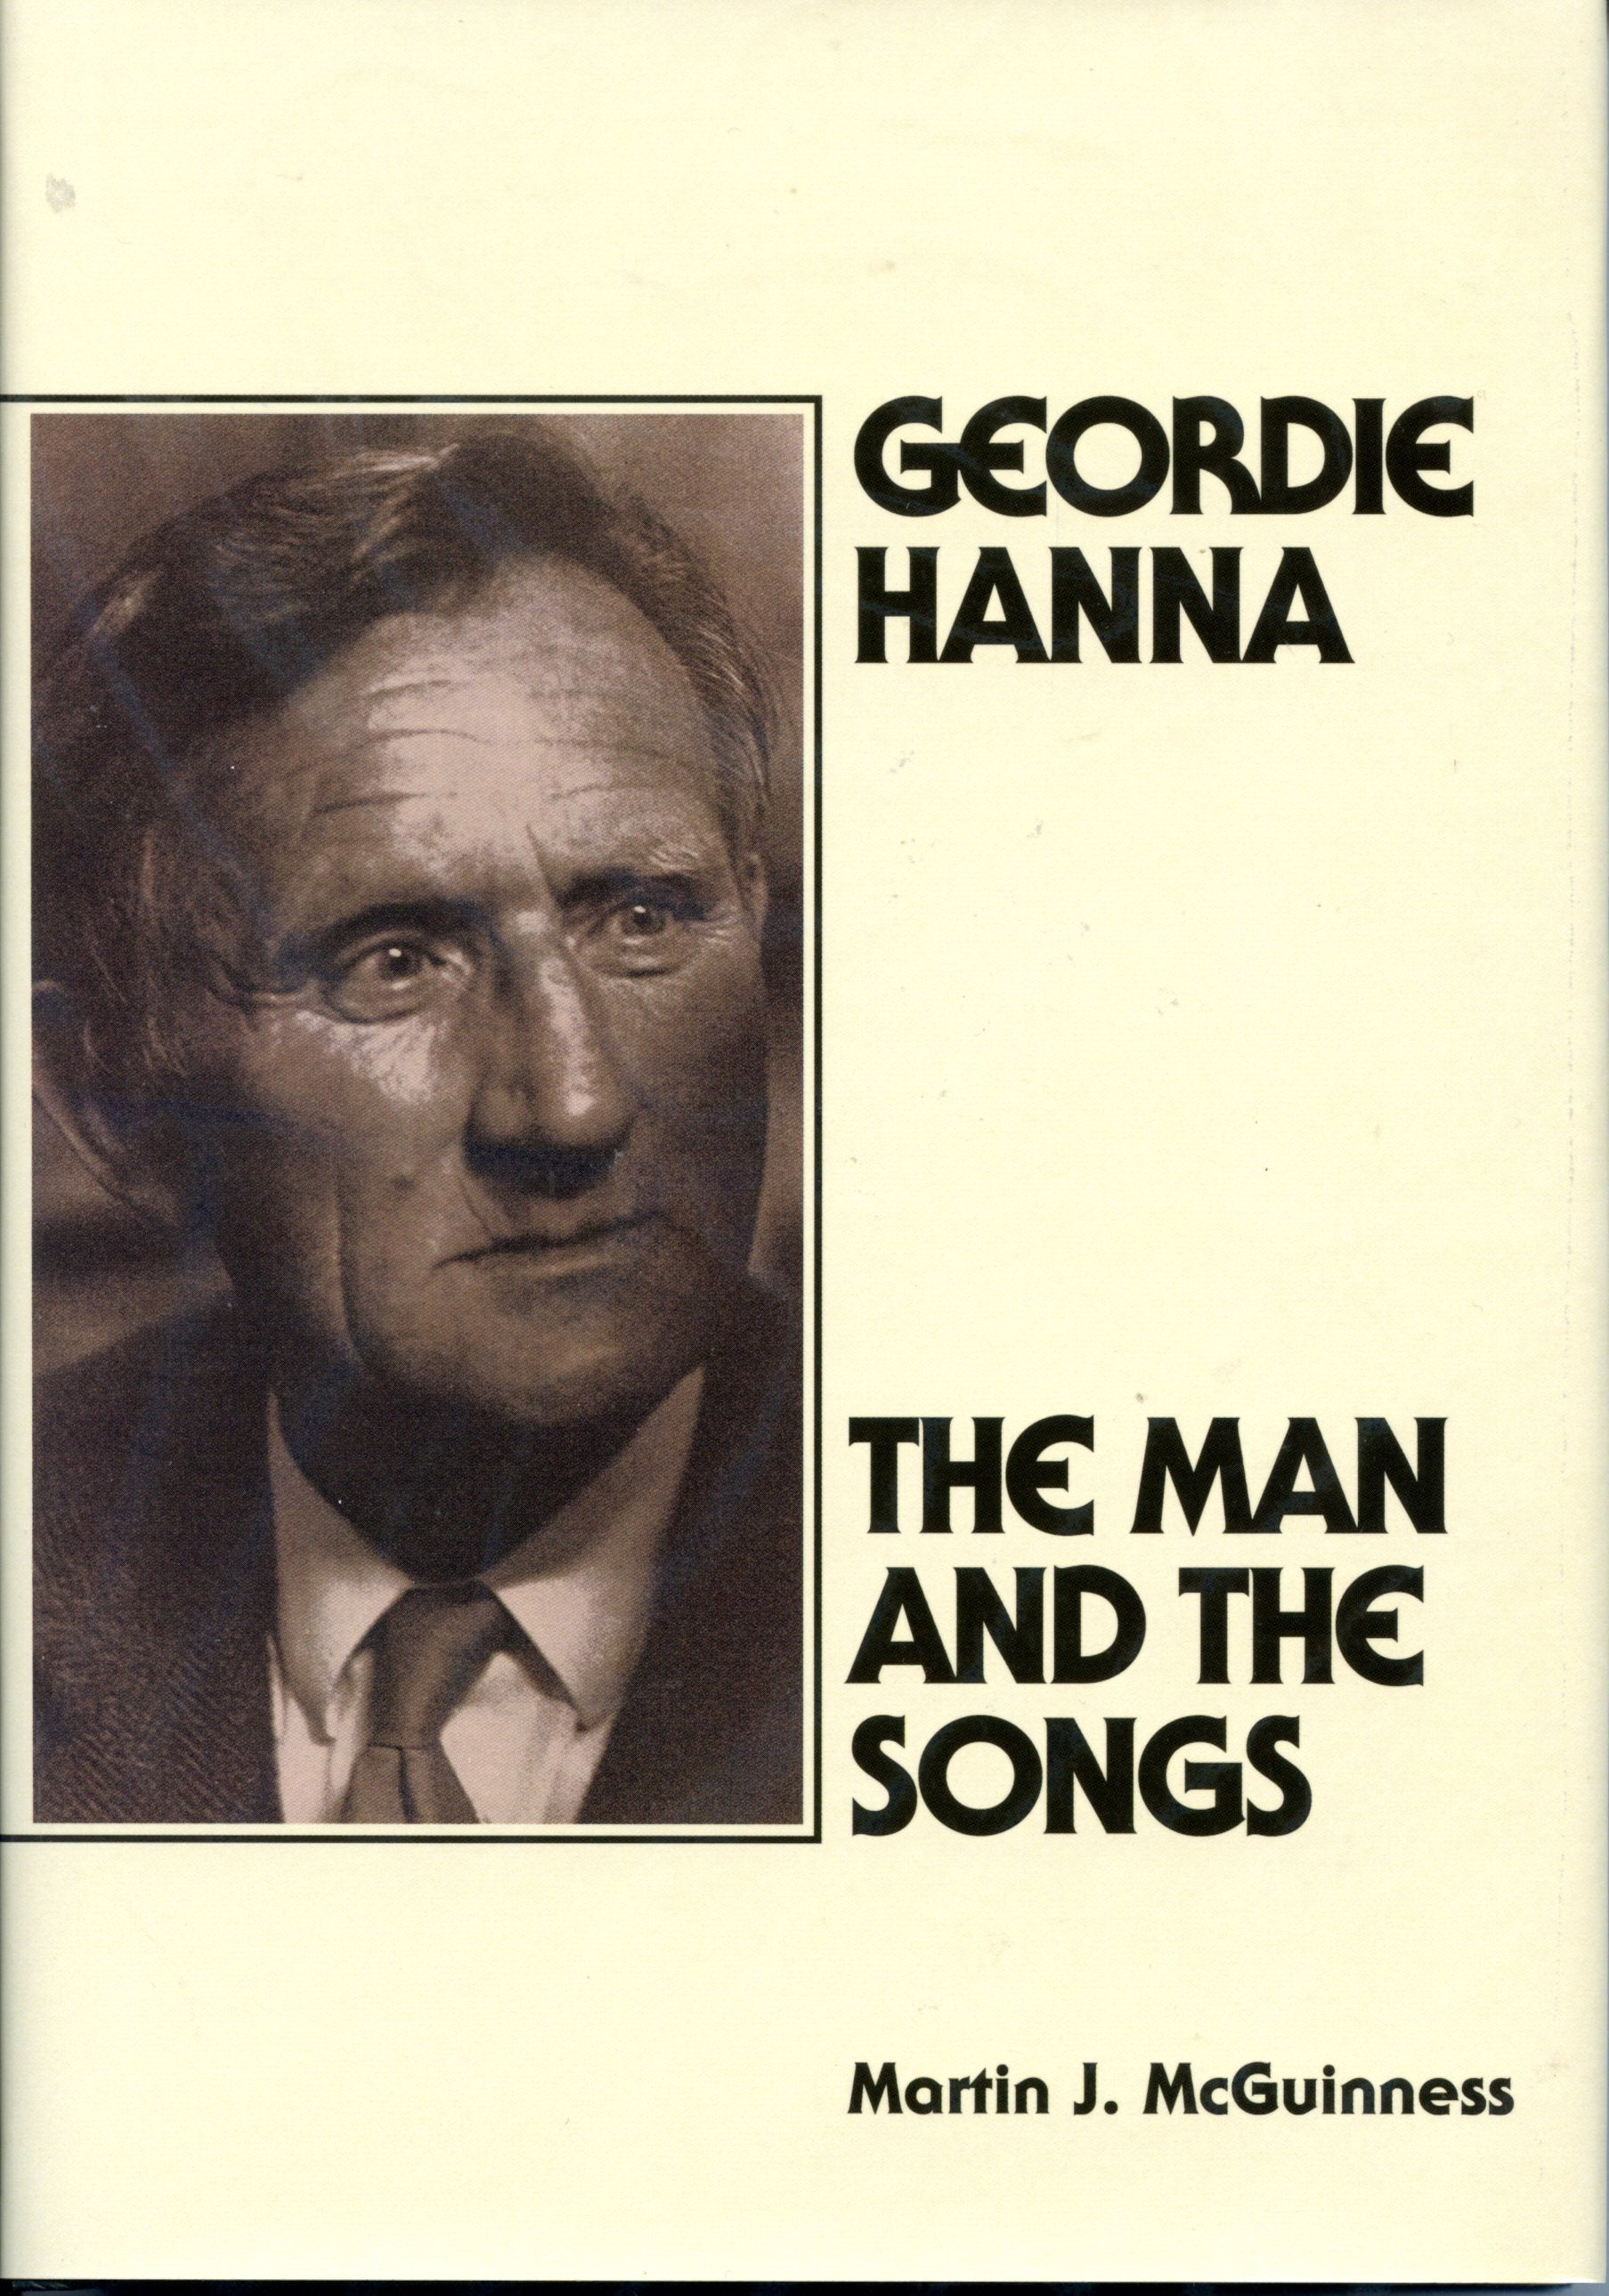 Geordie Hanna: the Man and the Songs / Martin J. McGuinness